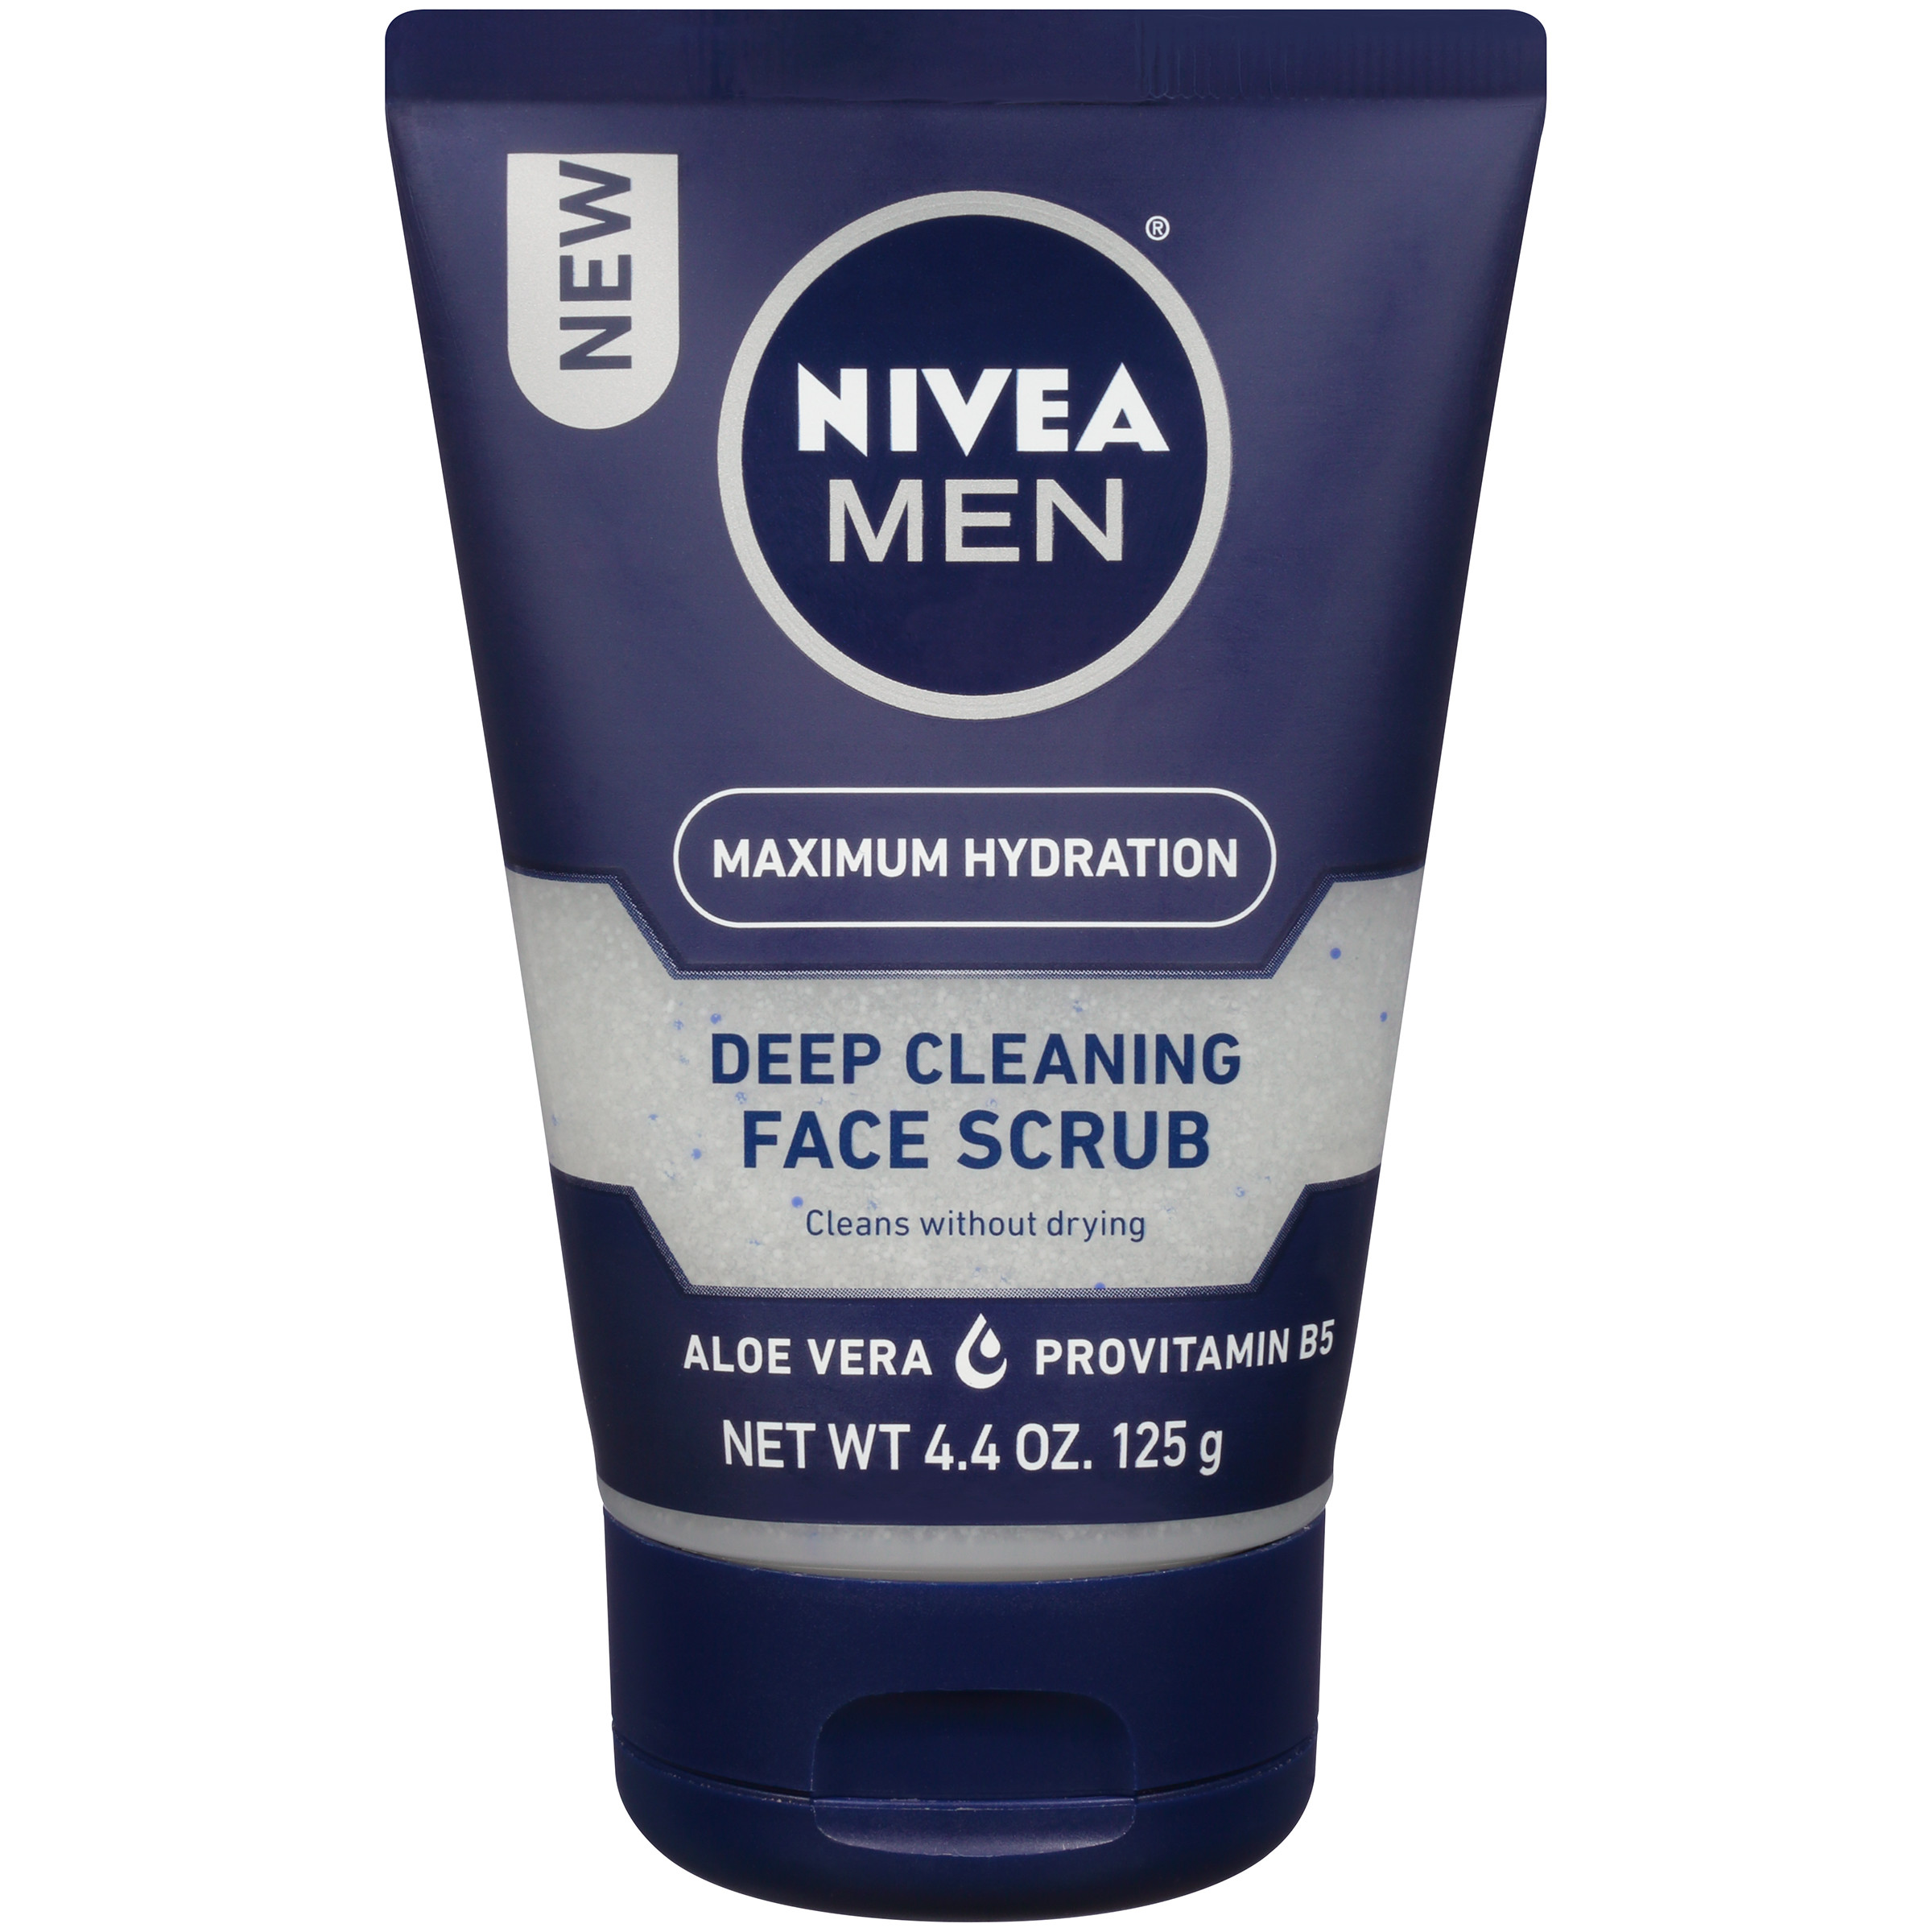 NIVEA Men Maximum Hydration Deep Cleaning Face Scrub 4.4 oz.